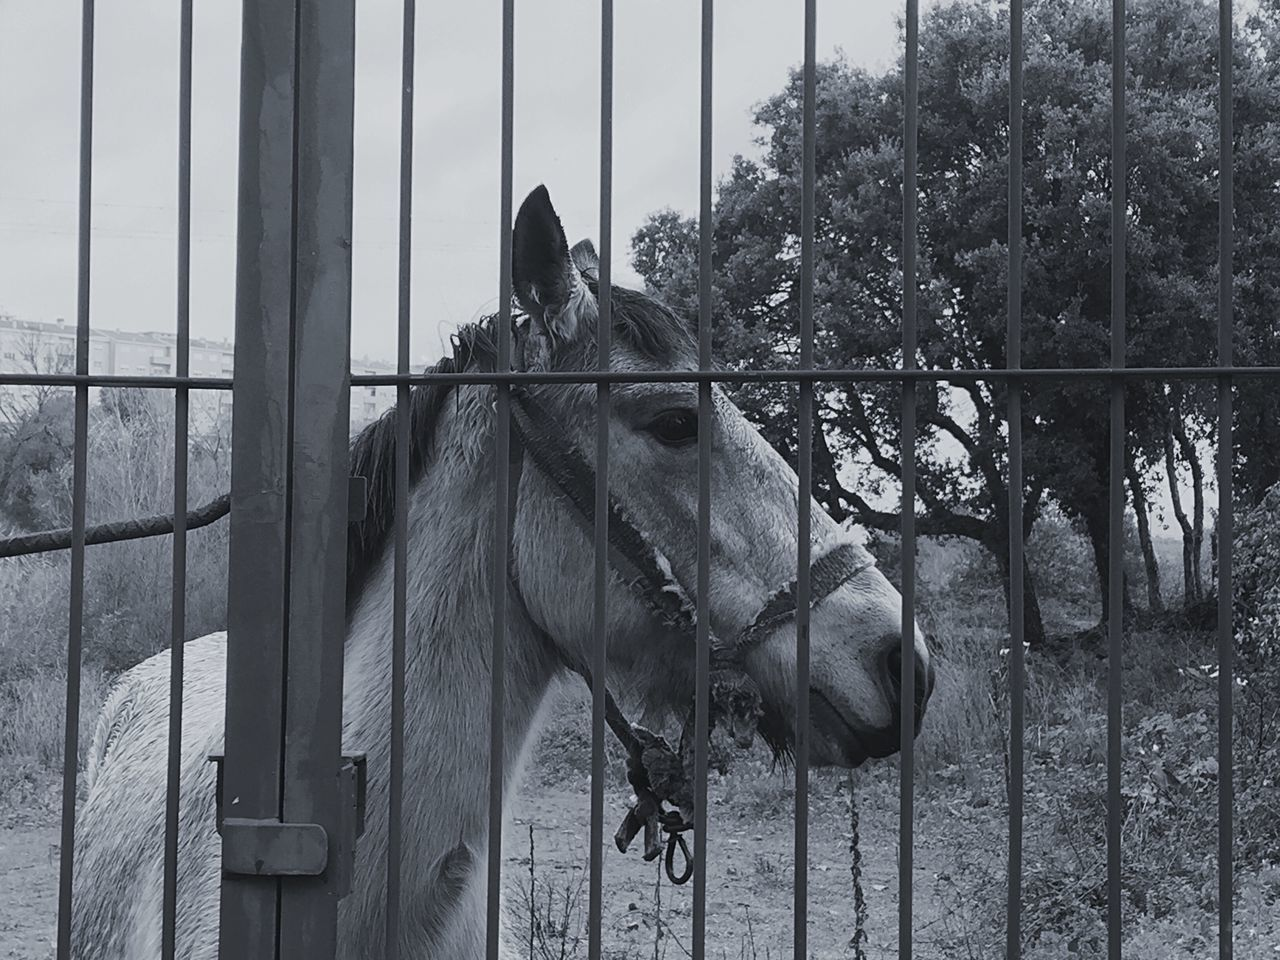 horse, domestic animals, animal themes, mammal, two animals, herbivorous, livestock, paddock, day, outdoors, tree, no people, sky, nature